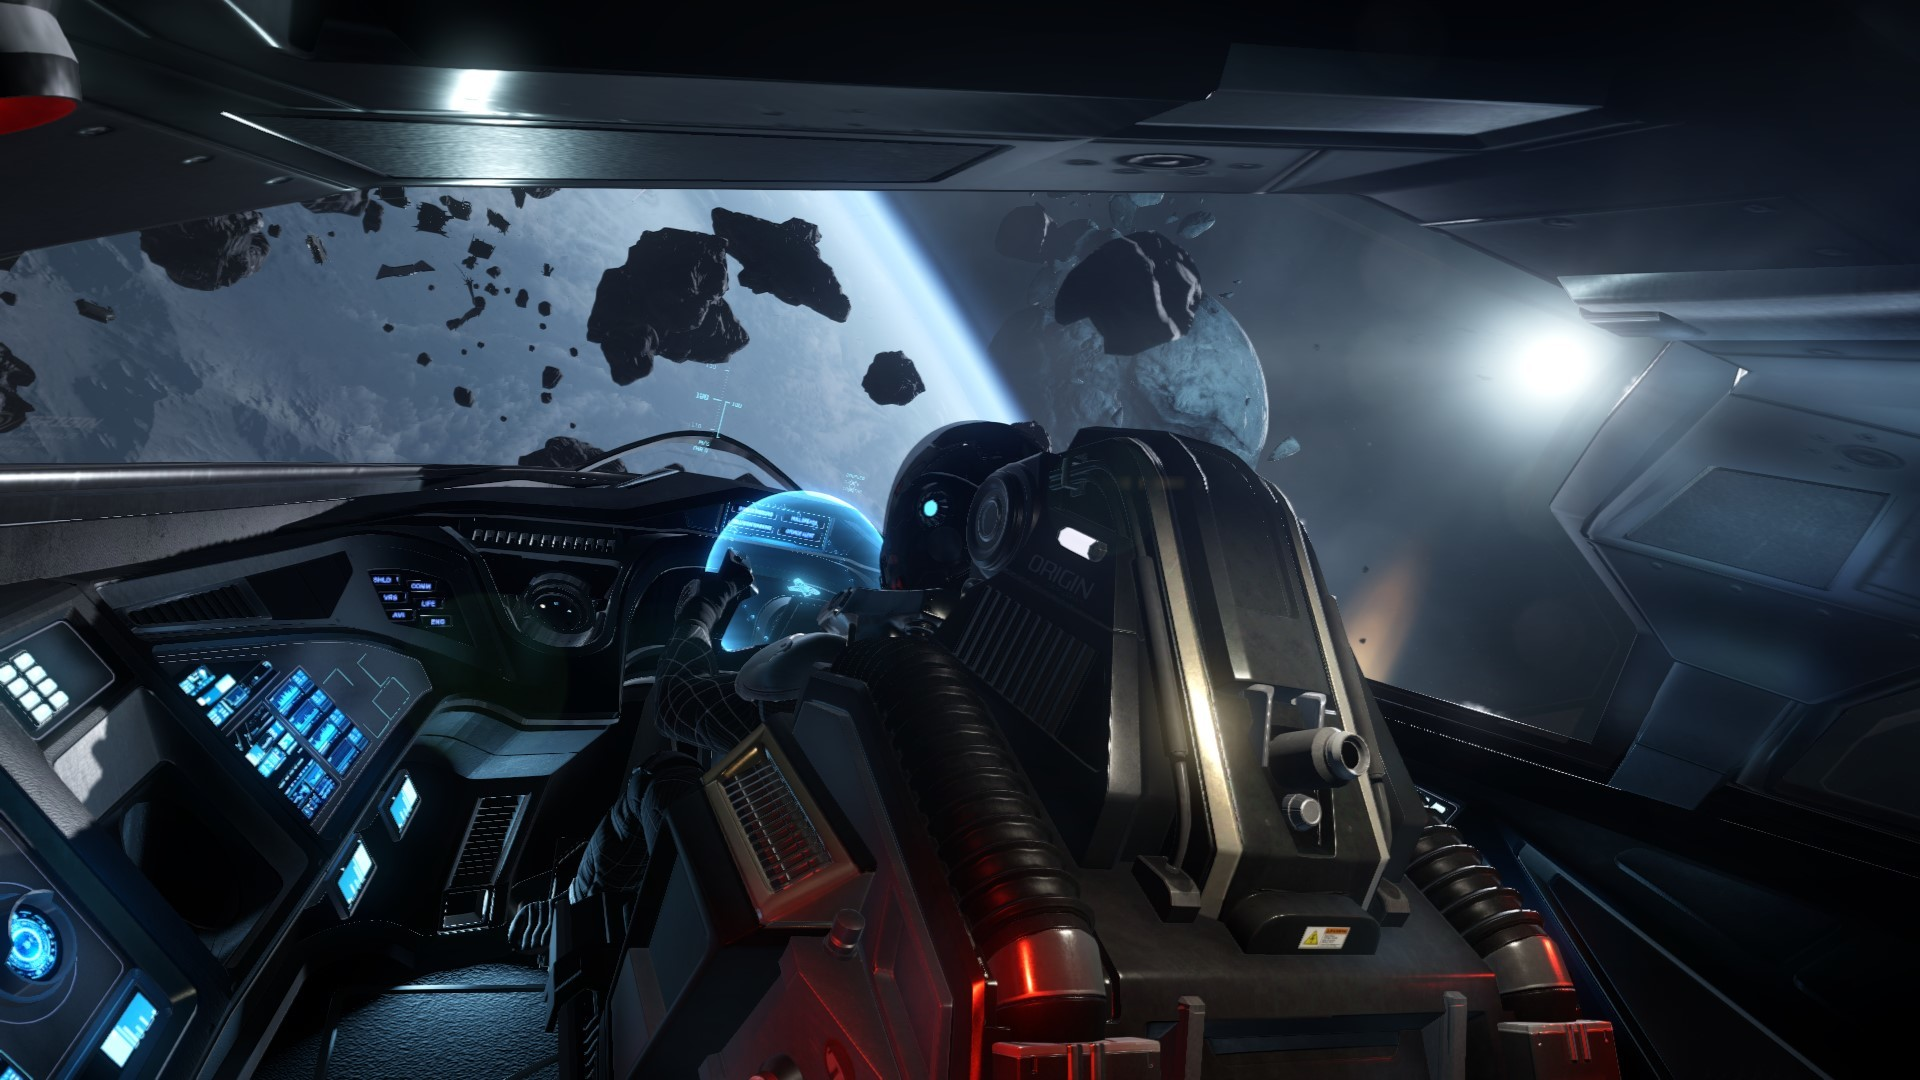 Pin by Caleb Maxwell on Concept space vehicles   Pinterest   Star citizen,  Sci fi and Spaceship interior